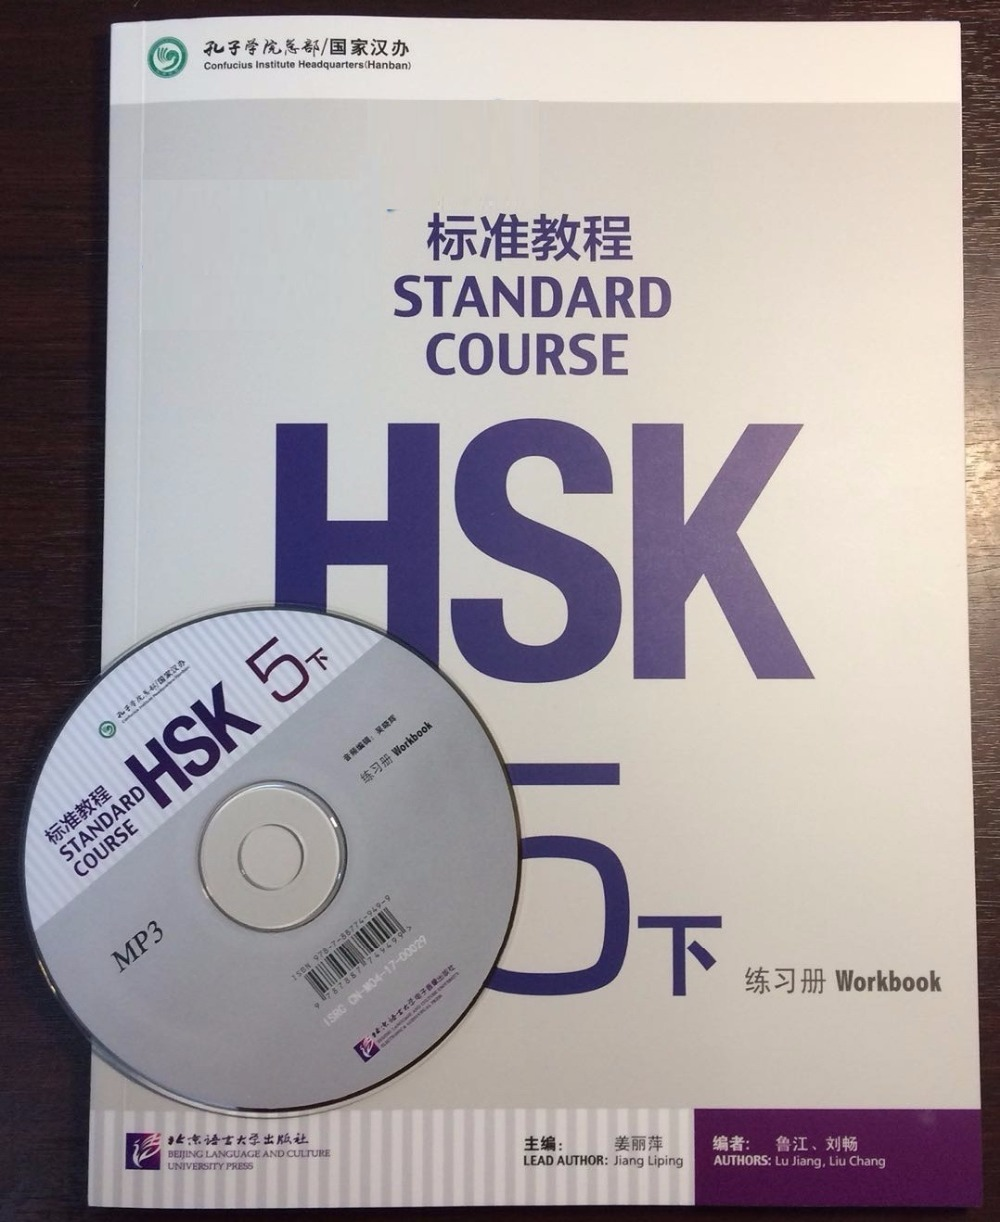 Chinese English exercise book HSK students workbook :Standard Course HSK 5B (with CD) laser a2 workbook with key cd rom